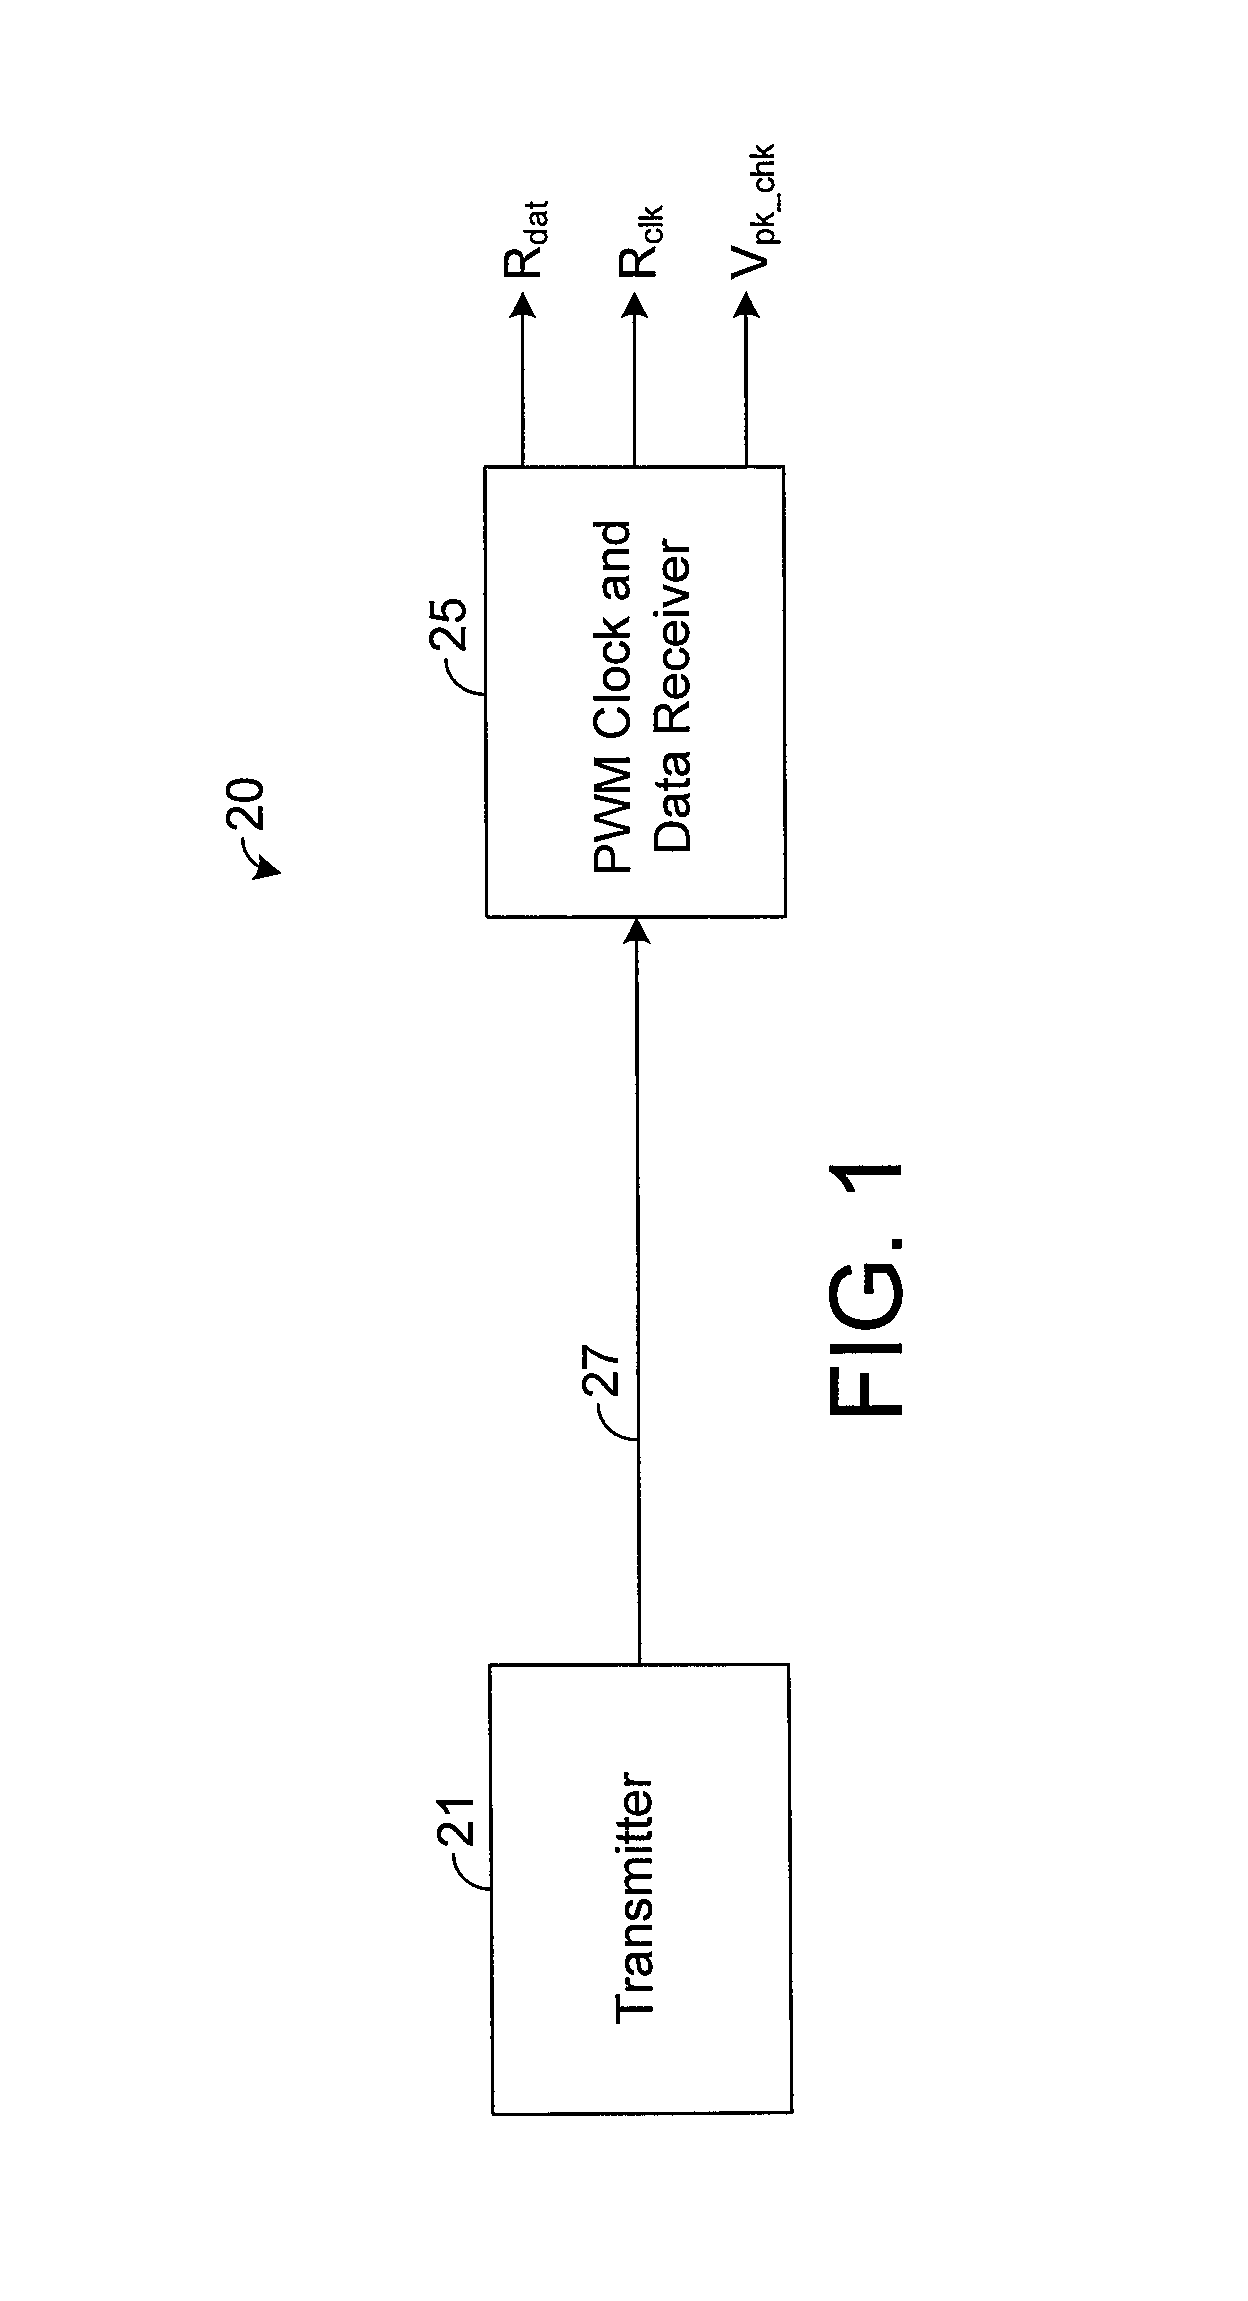 Patent Us8068559 Pulse Width Modulation Pwm Clock And Data Oscillator With Fixed Frequency Variable Duty Cycle Circuit Drawing